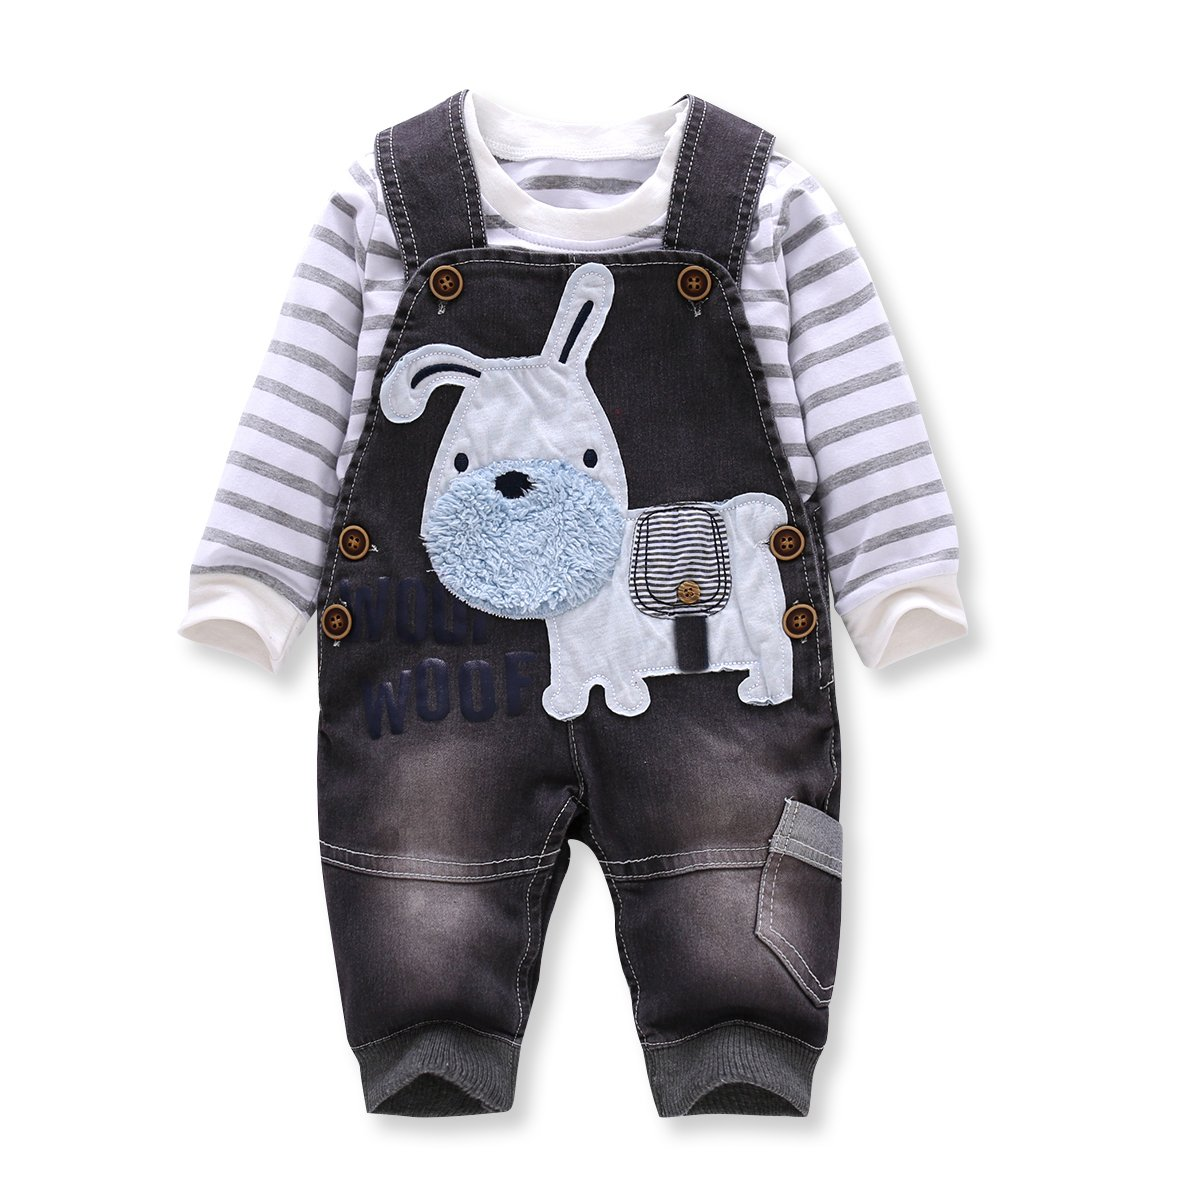 6e744a6b48ba Galleon - LvYinLi US Baby Boy Clothes Boys  Romper Jumpsuit Overalls ...